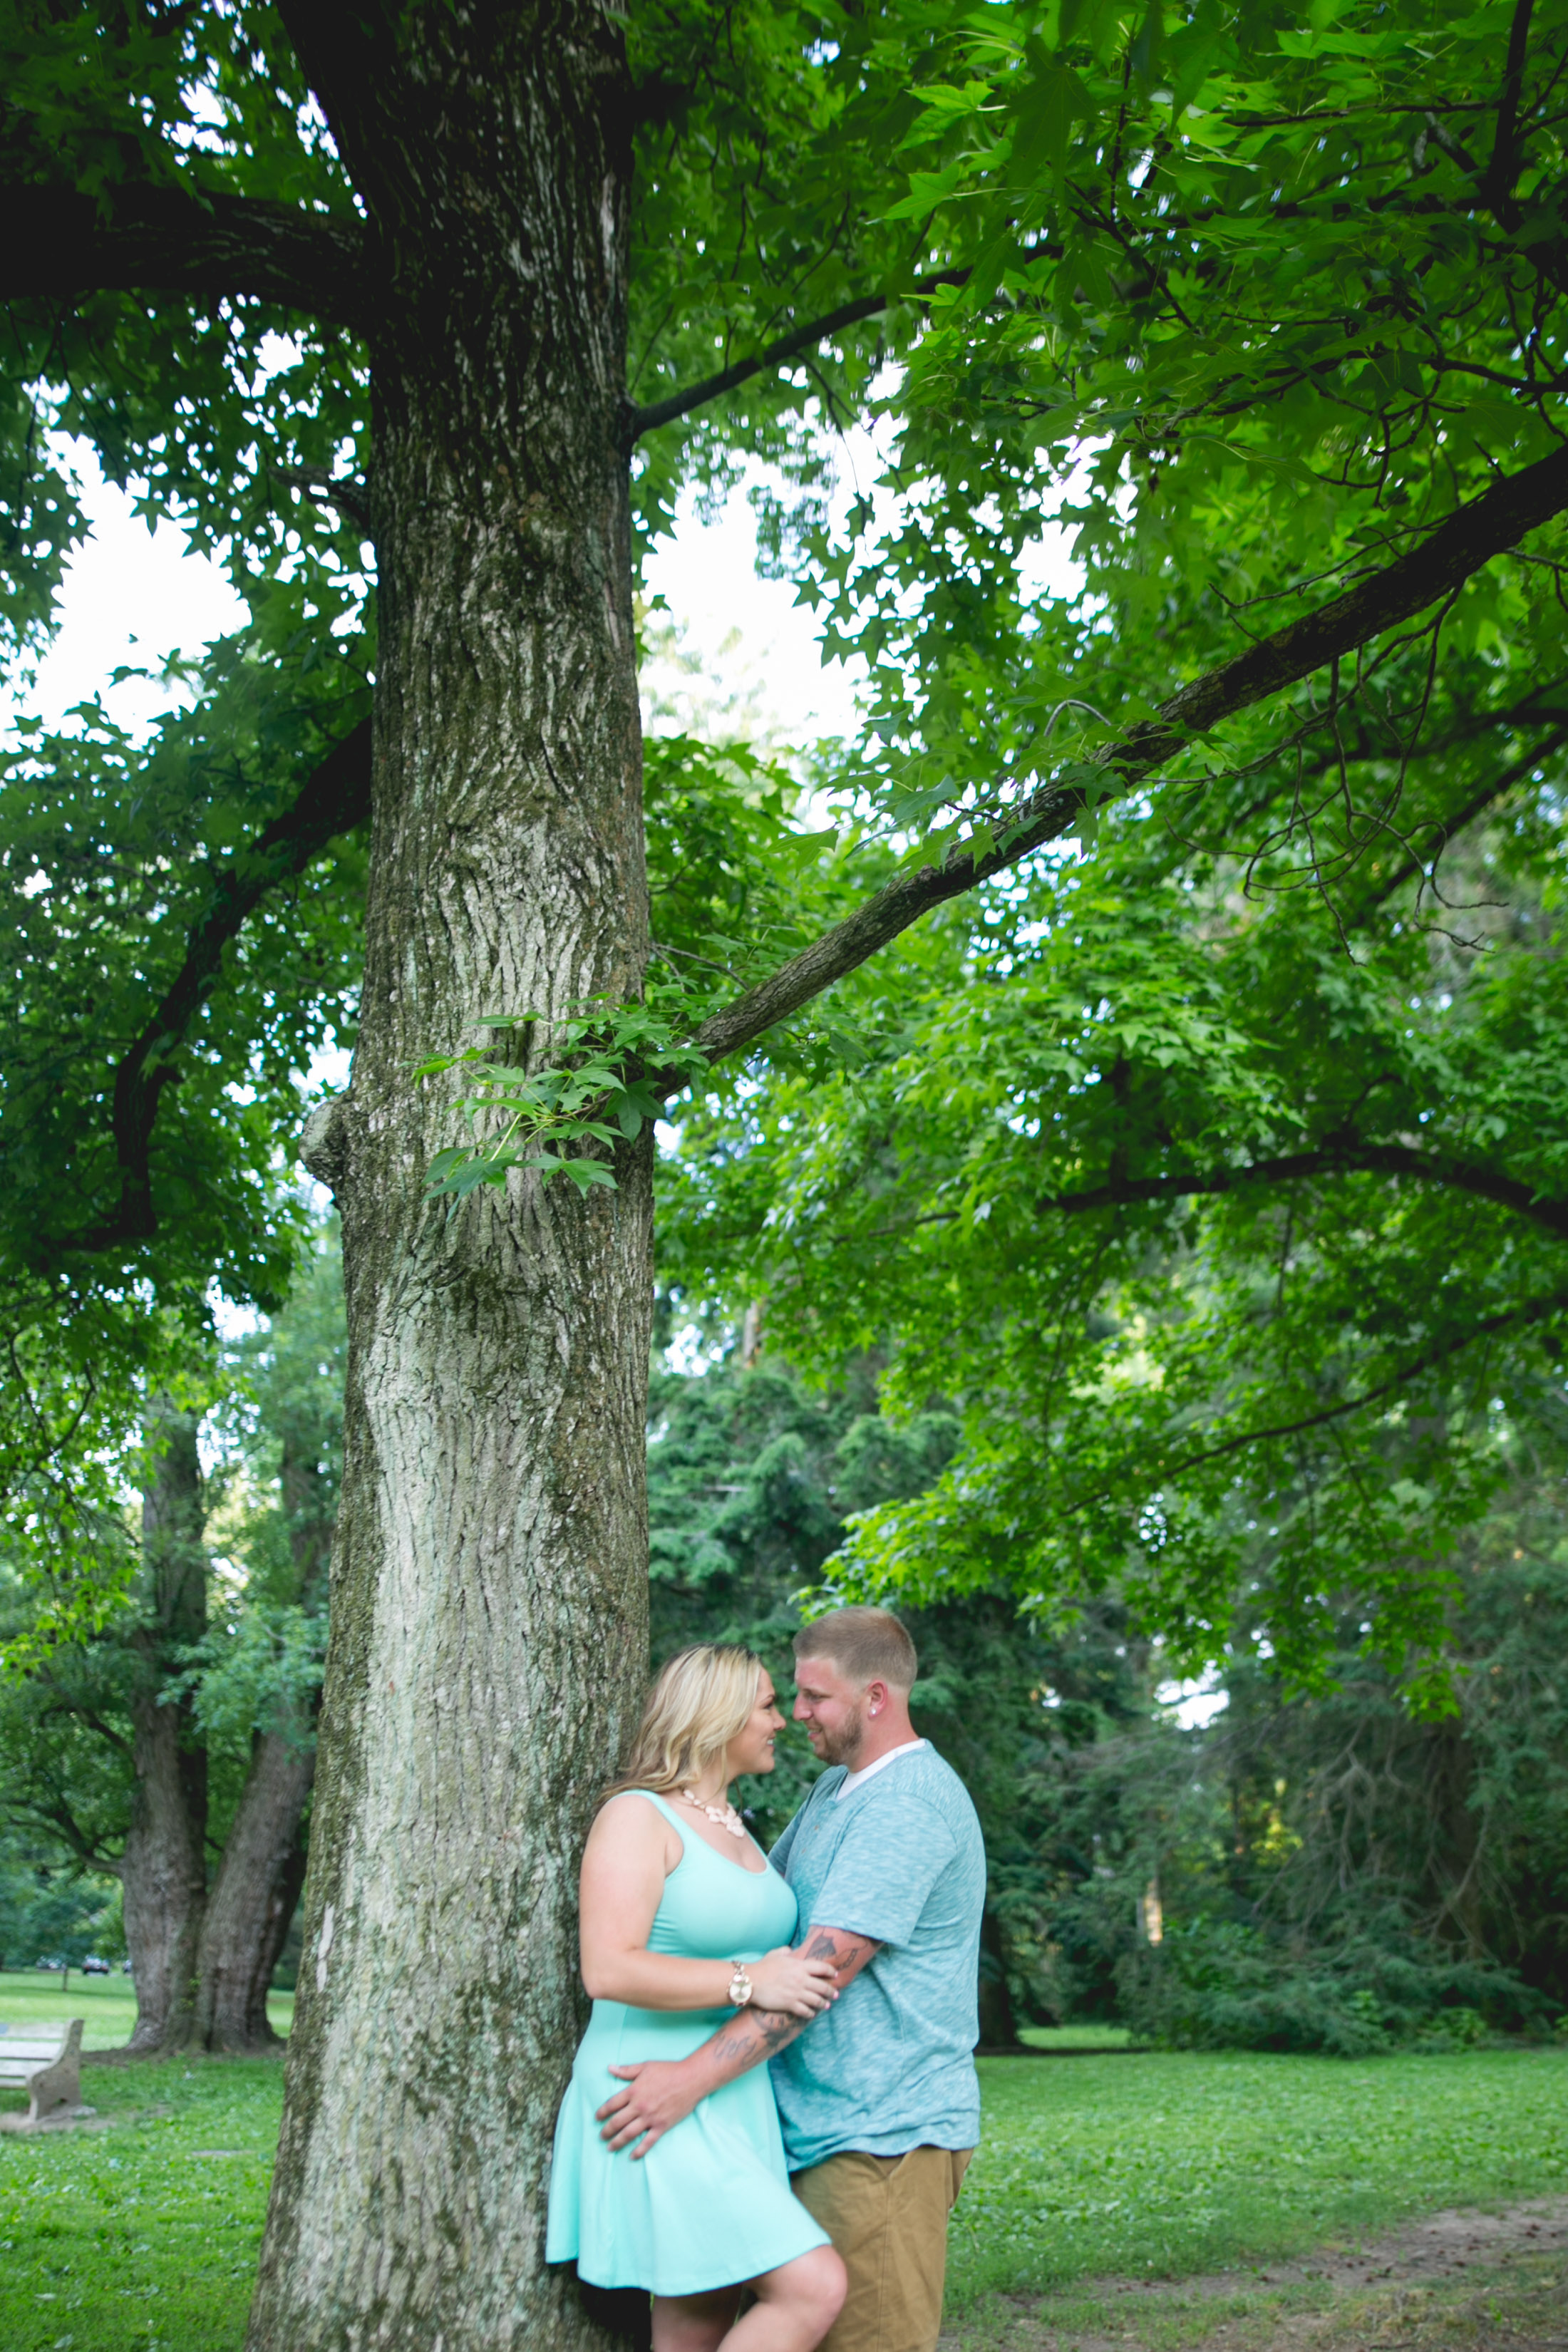 A Pastorius Park Philadelphia Engagement Session by Swiger Photography.  Engagement session with kids.